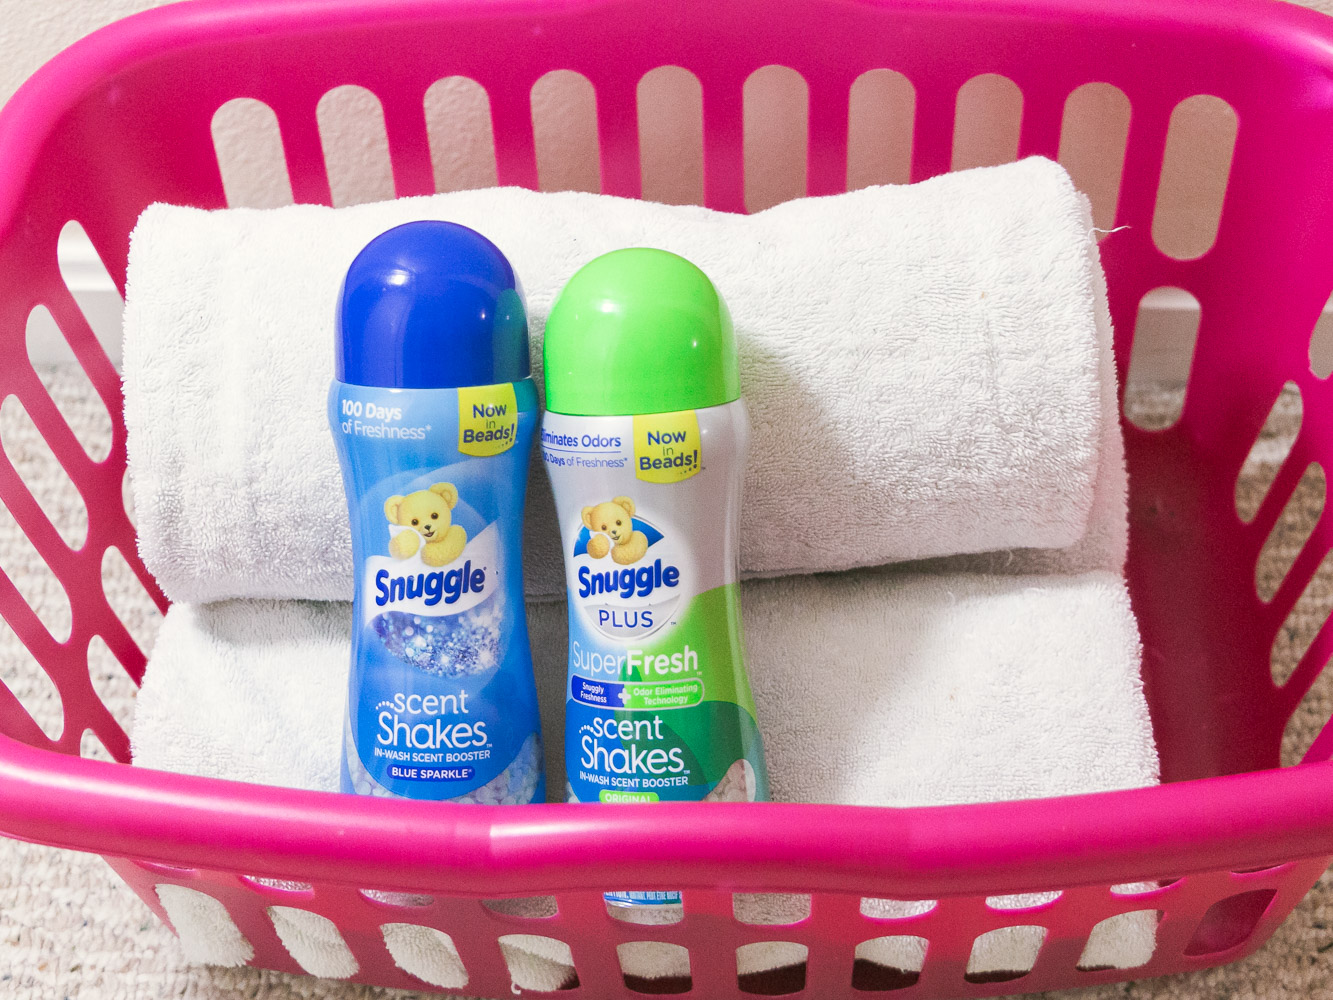 Snuggle Scent Shakes review featured by top US life and style blog, Baby Castan on Board